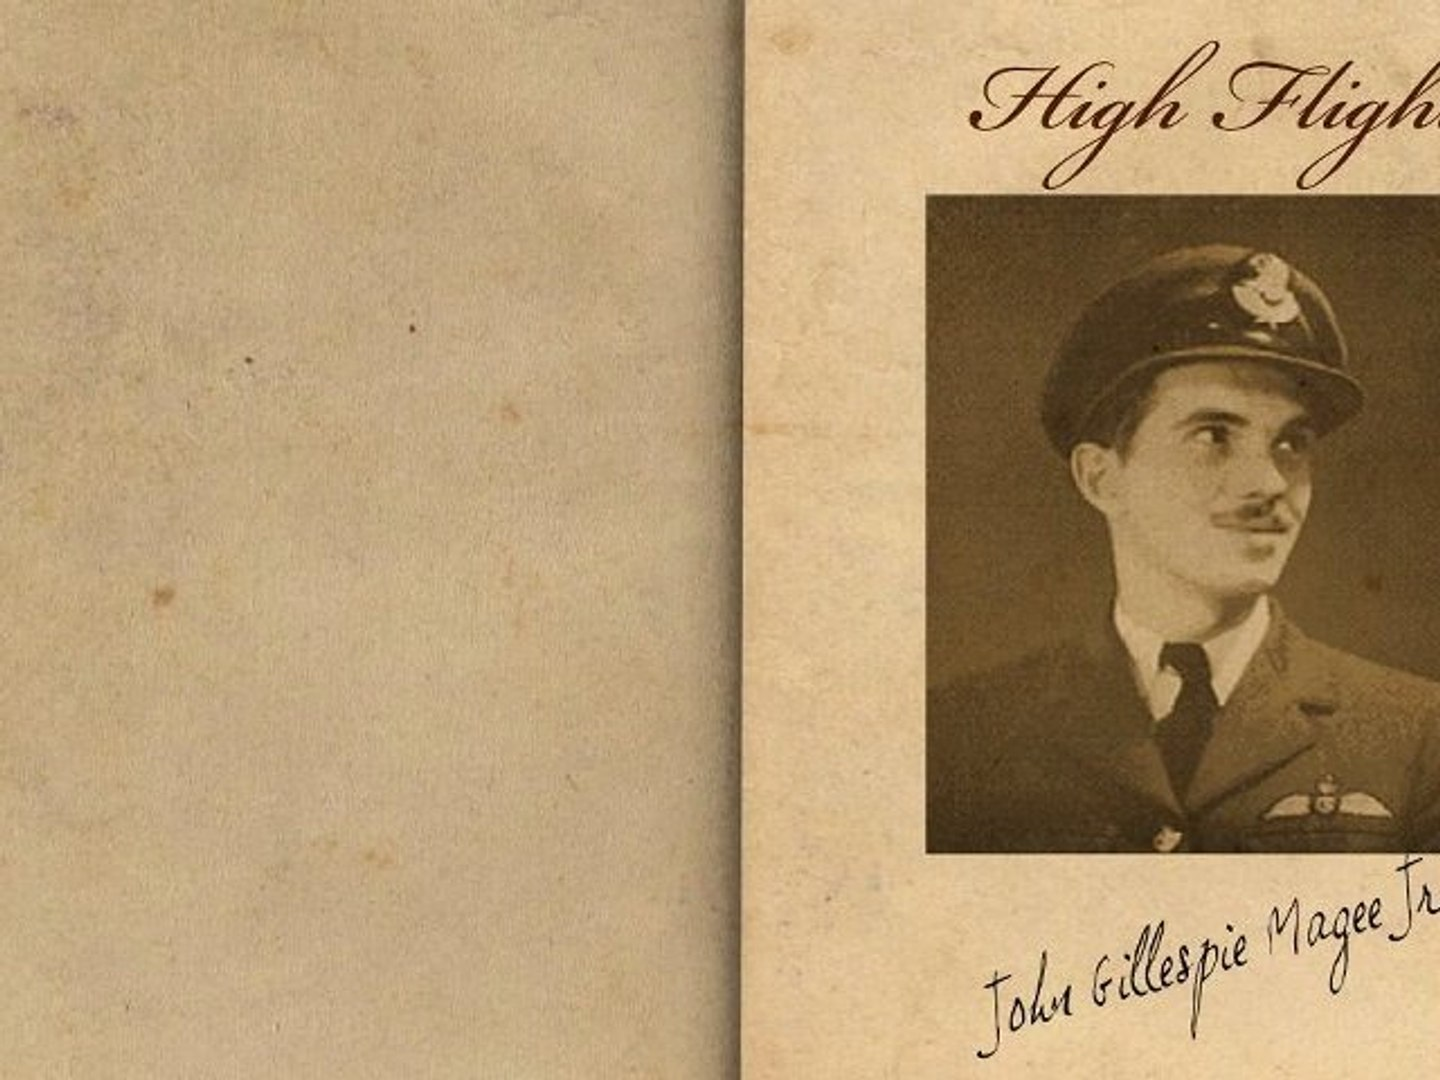 High Flight By John Gillespie Magee Jr Poetry Reading